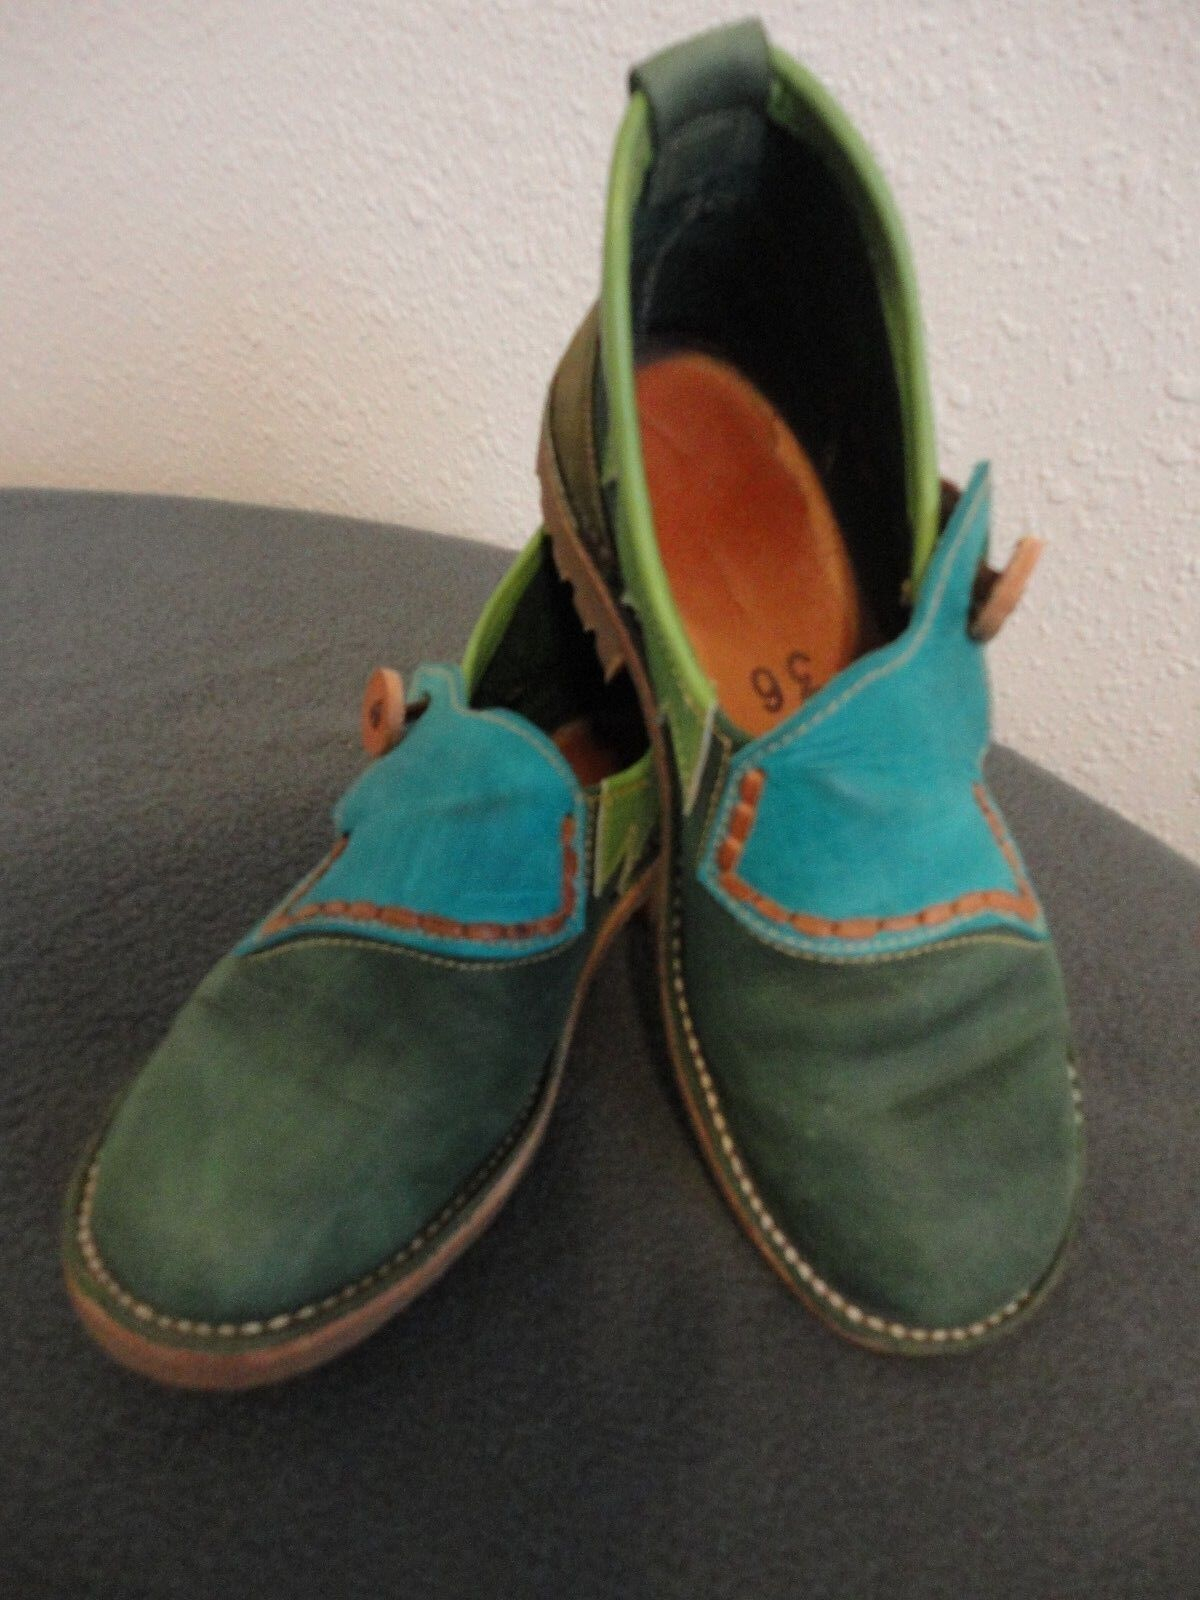 VINTAGE ANDINO HANDMADE SUEDE COLORFUL SHOES UNISEX  SIZE US 6 EURO 36